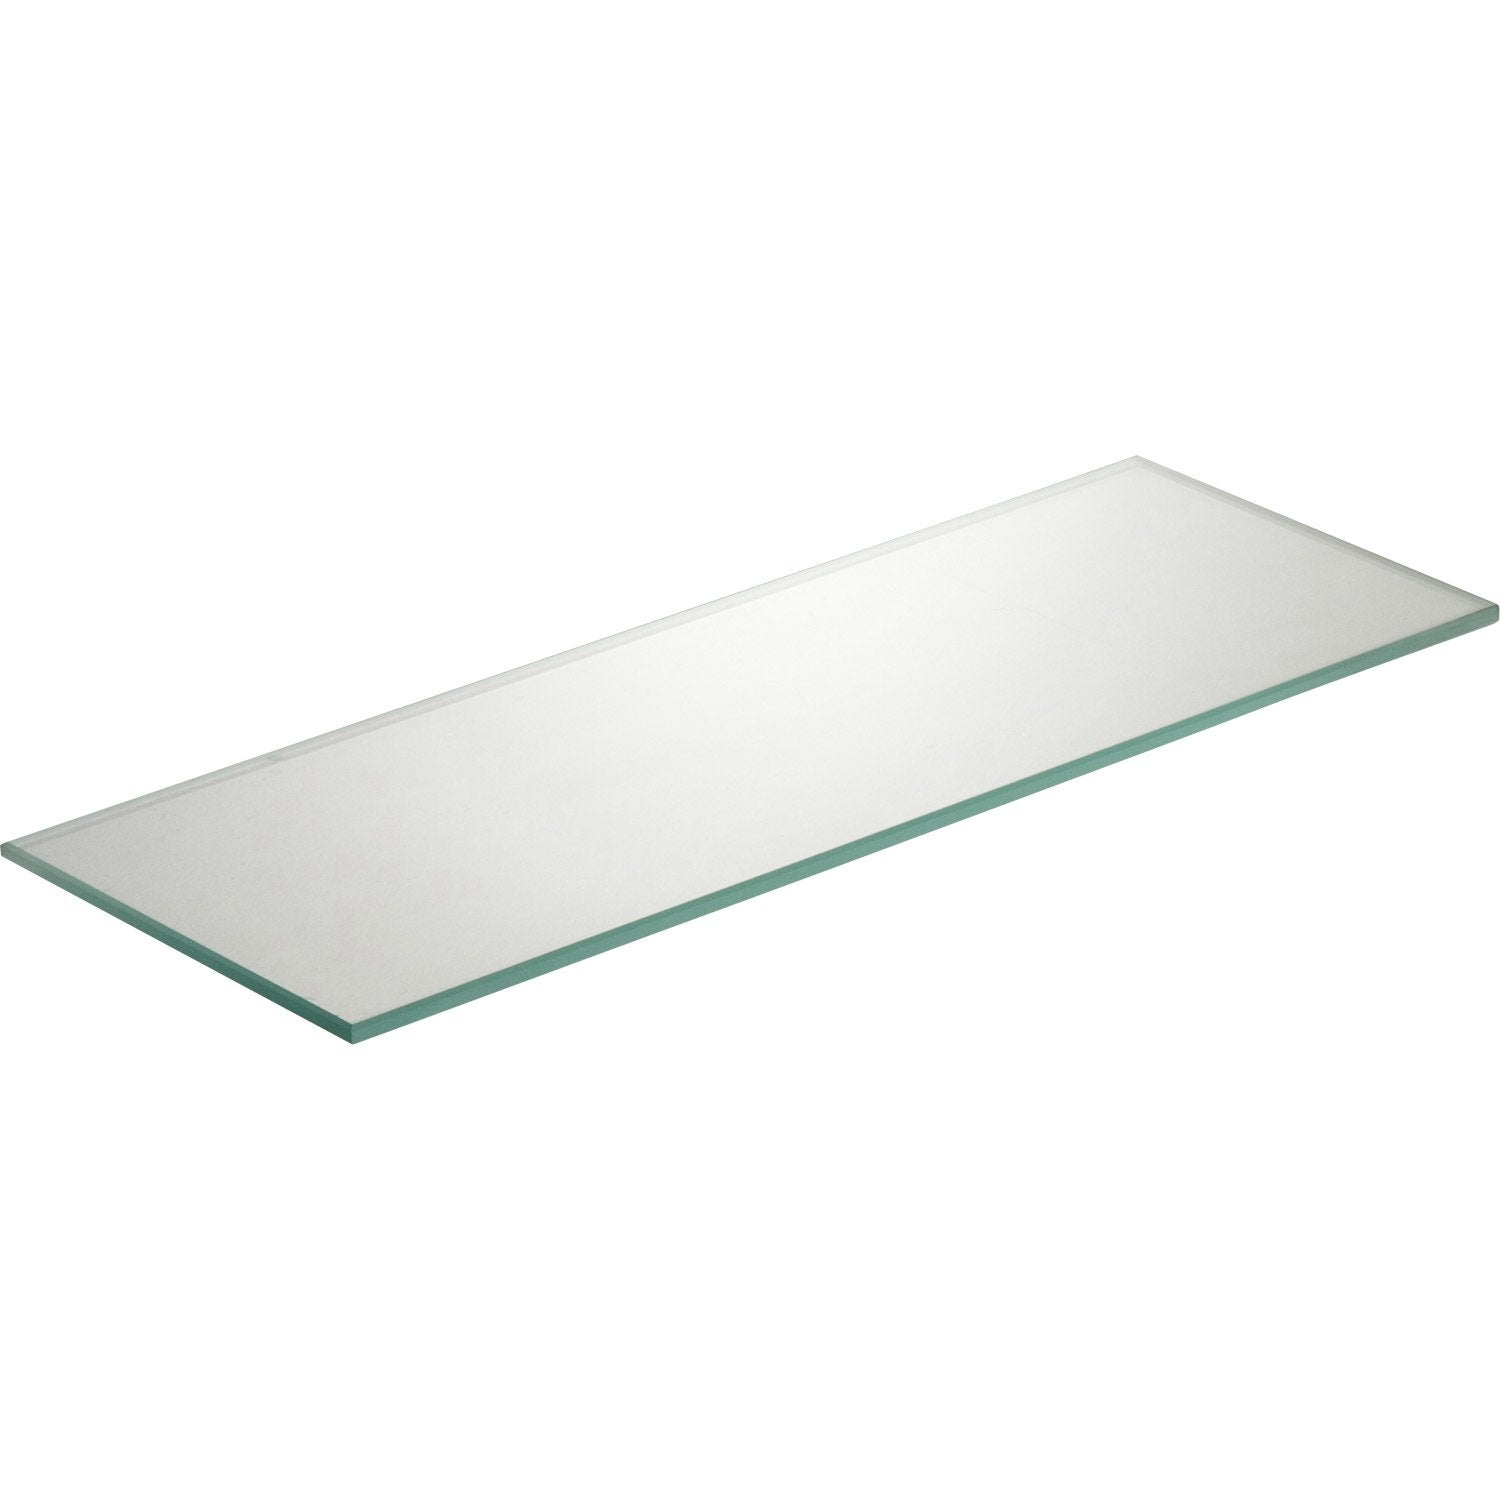 Etag re murale verre transparent l 40 x p 15 cm ep 6 mm leroy merlin - Coupe de verre leroy merlin ...